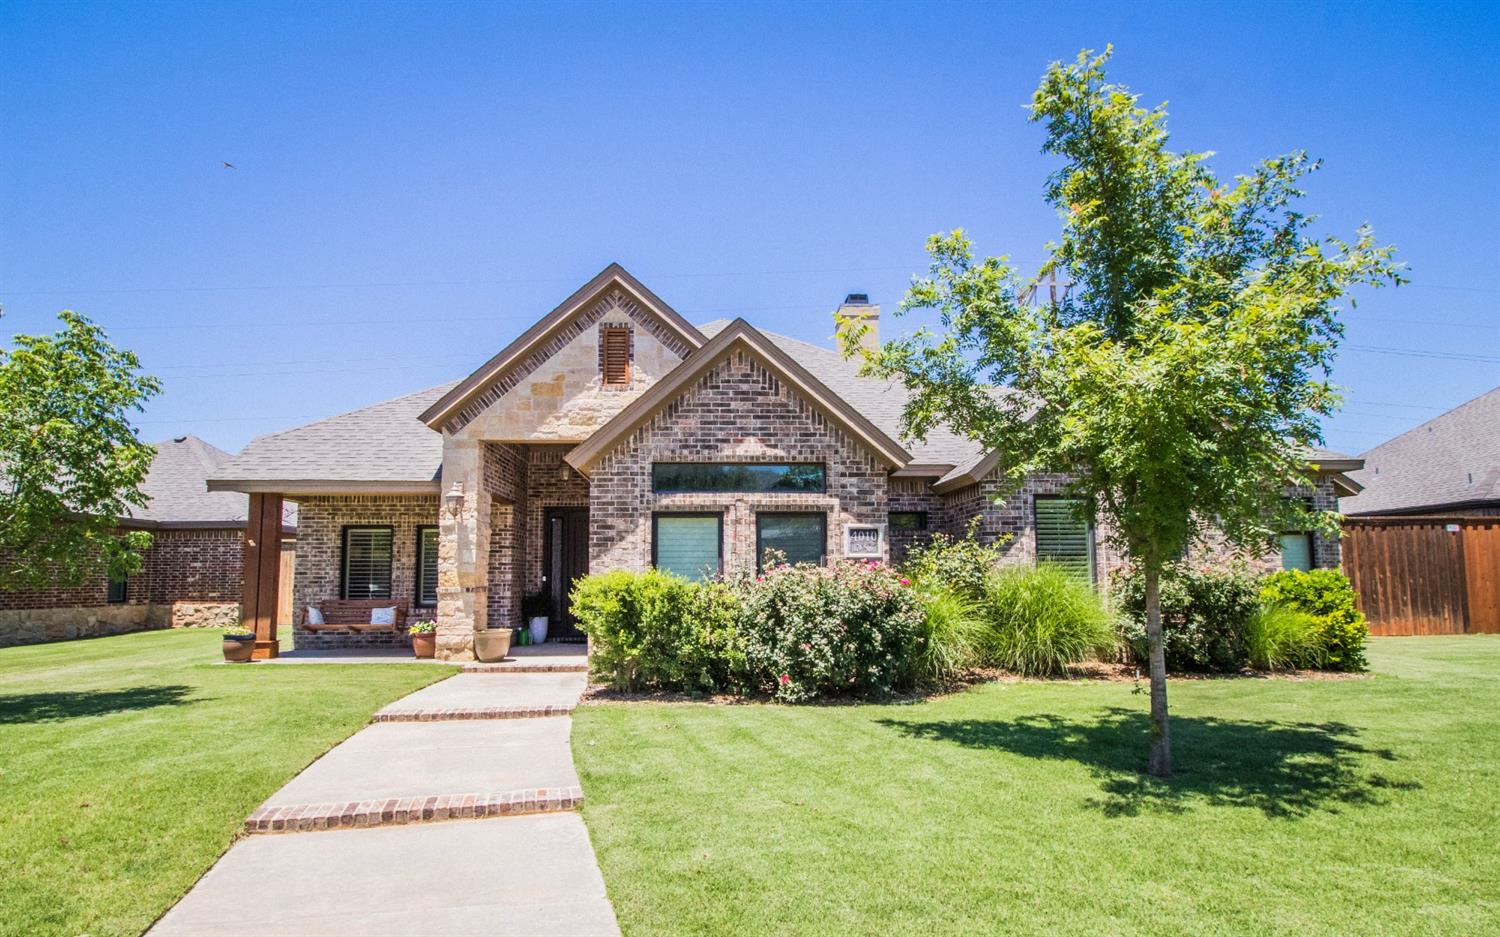 4010 107th Street, Lubbock in Lubbock County, TX 79423 Home for Sale